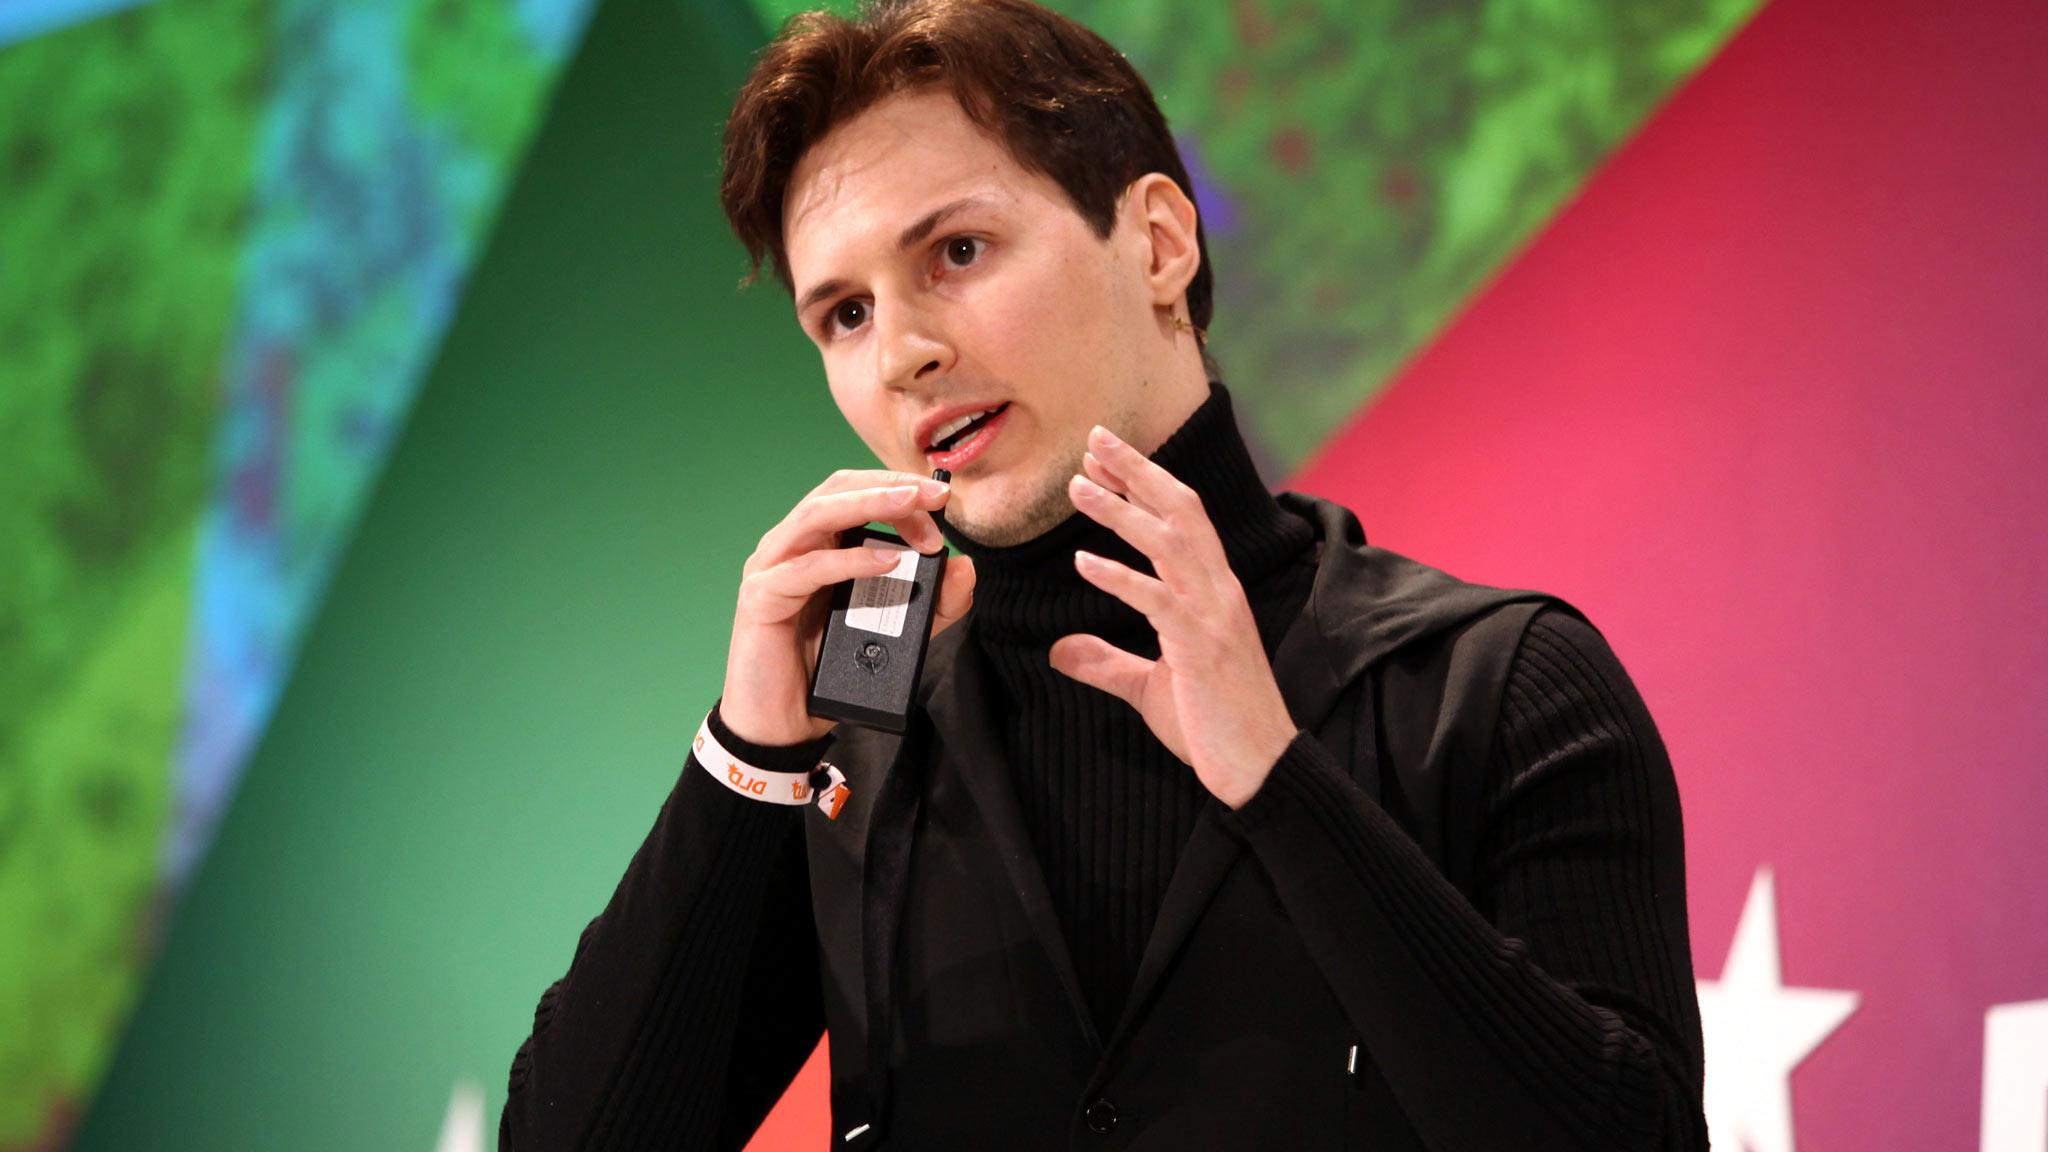 The condition of Lev Durov improved 08/14/2015 76